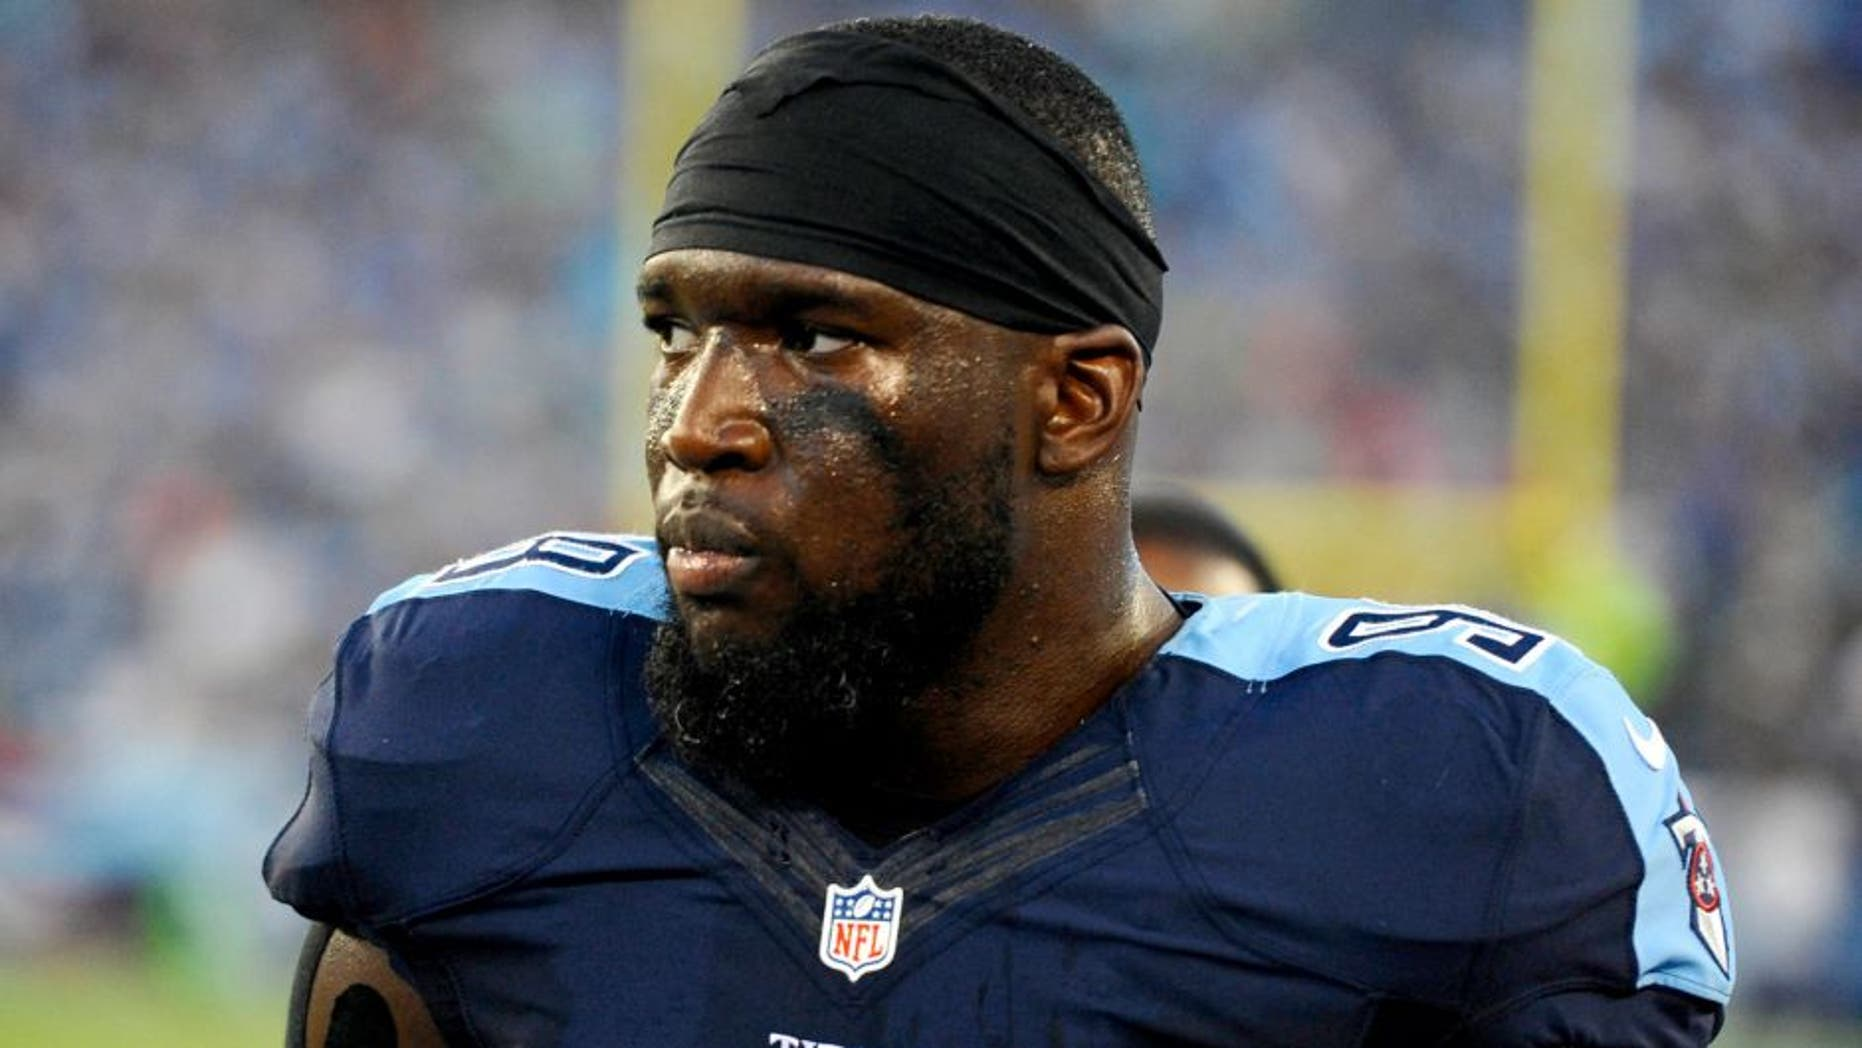 Aug 23, 2015; Nashville, TN, USA; Tennessee Titans linebacker Brian Orakpo (98) during the first half against the St. Louis Rams at Nissan Stadium. Mandatory Credit: Christopher Hanewinckel-USA TODAY Sports